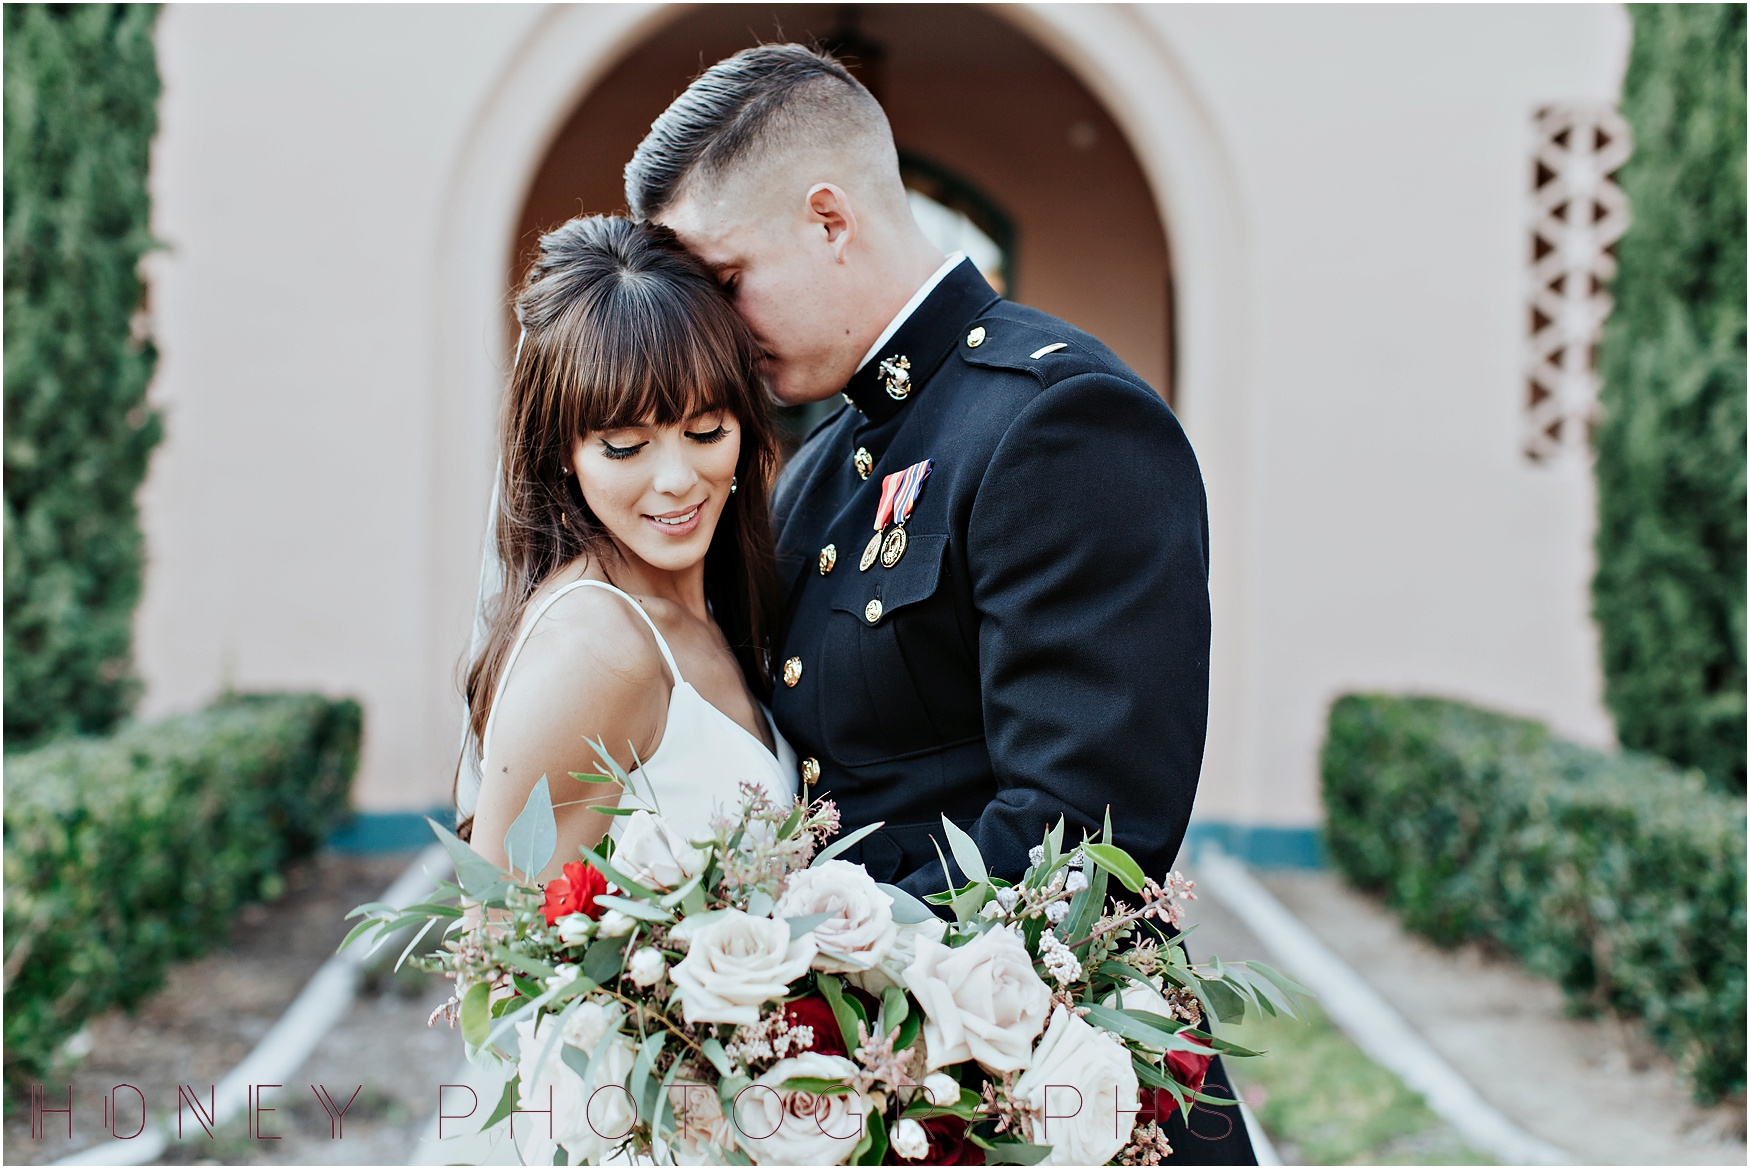 bricksandiegomilitaryurbanwedding0031.JPG